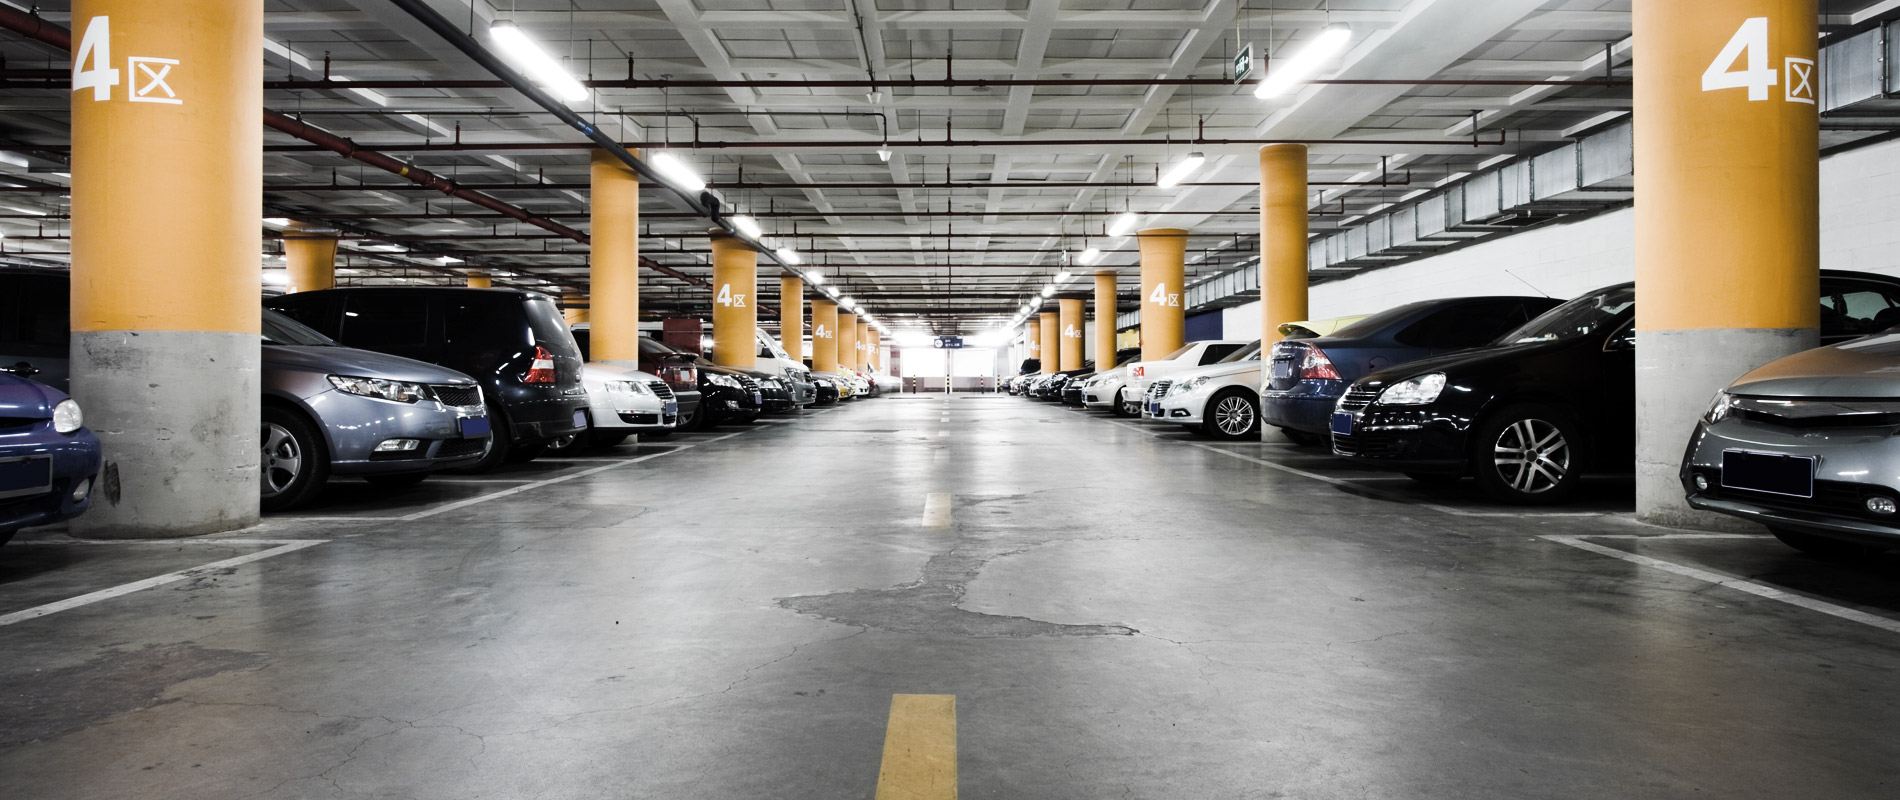 Penn parking parking management consulting solutions for Garage team city